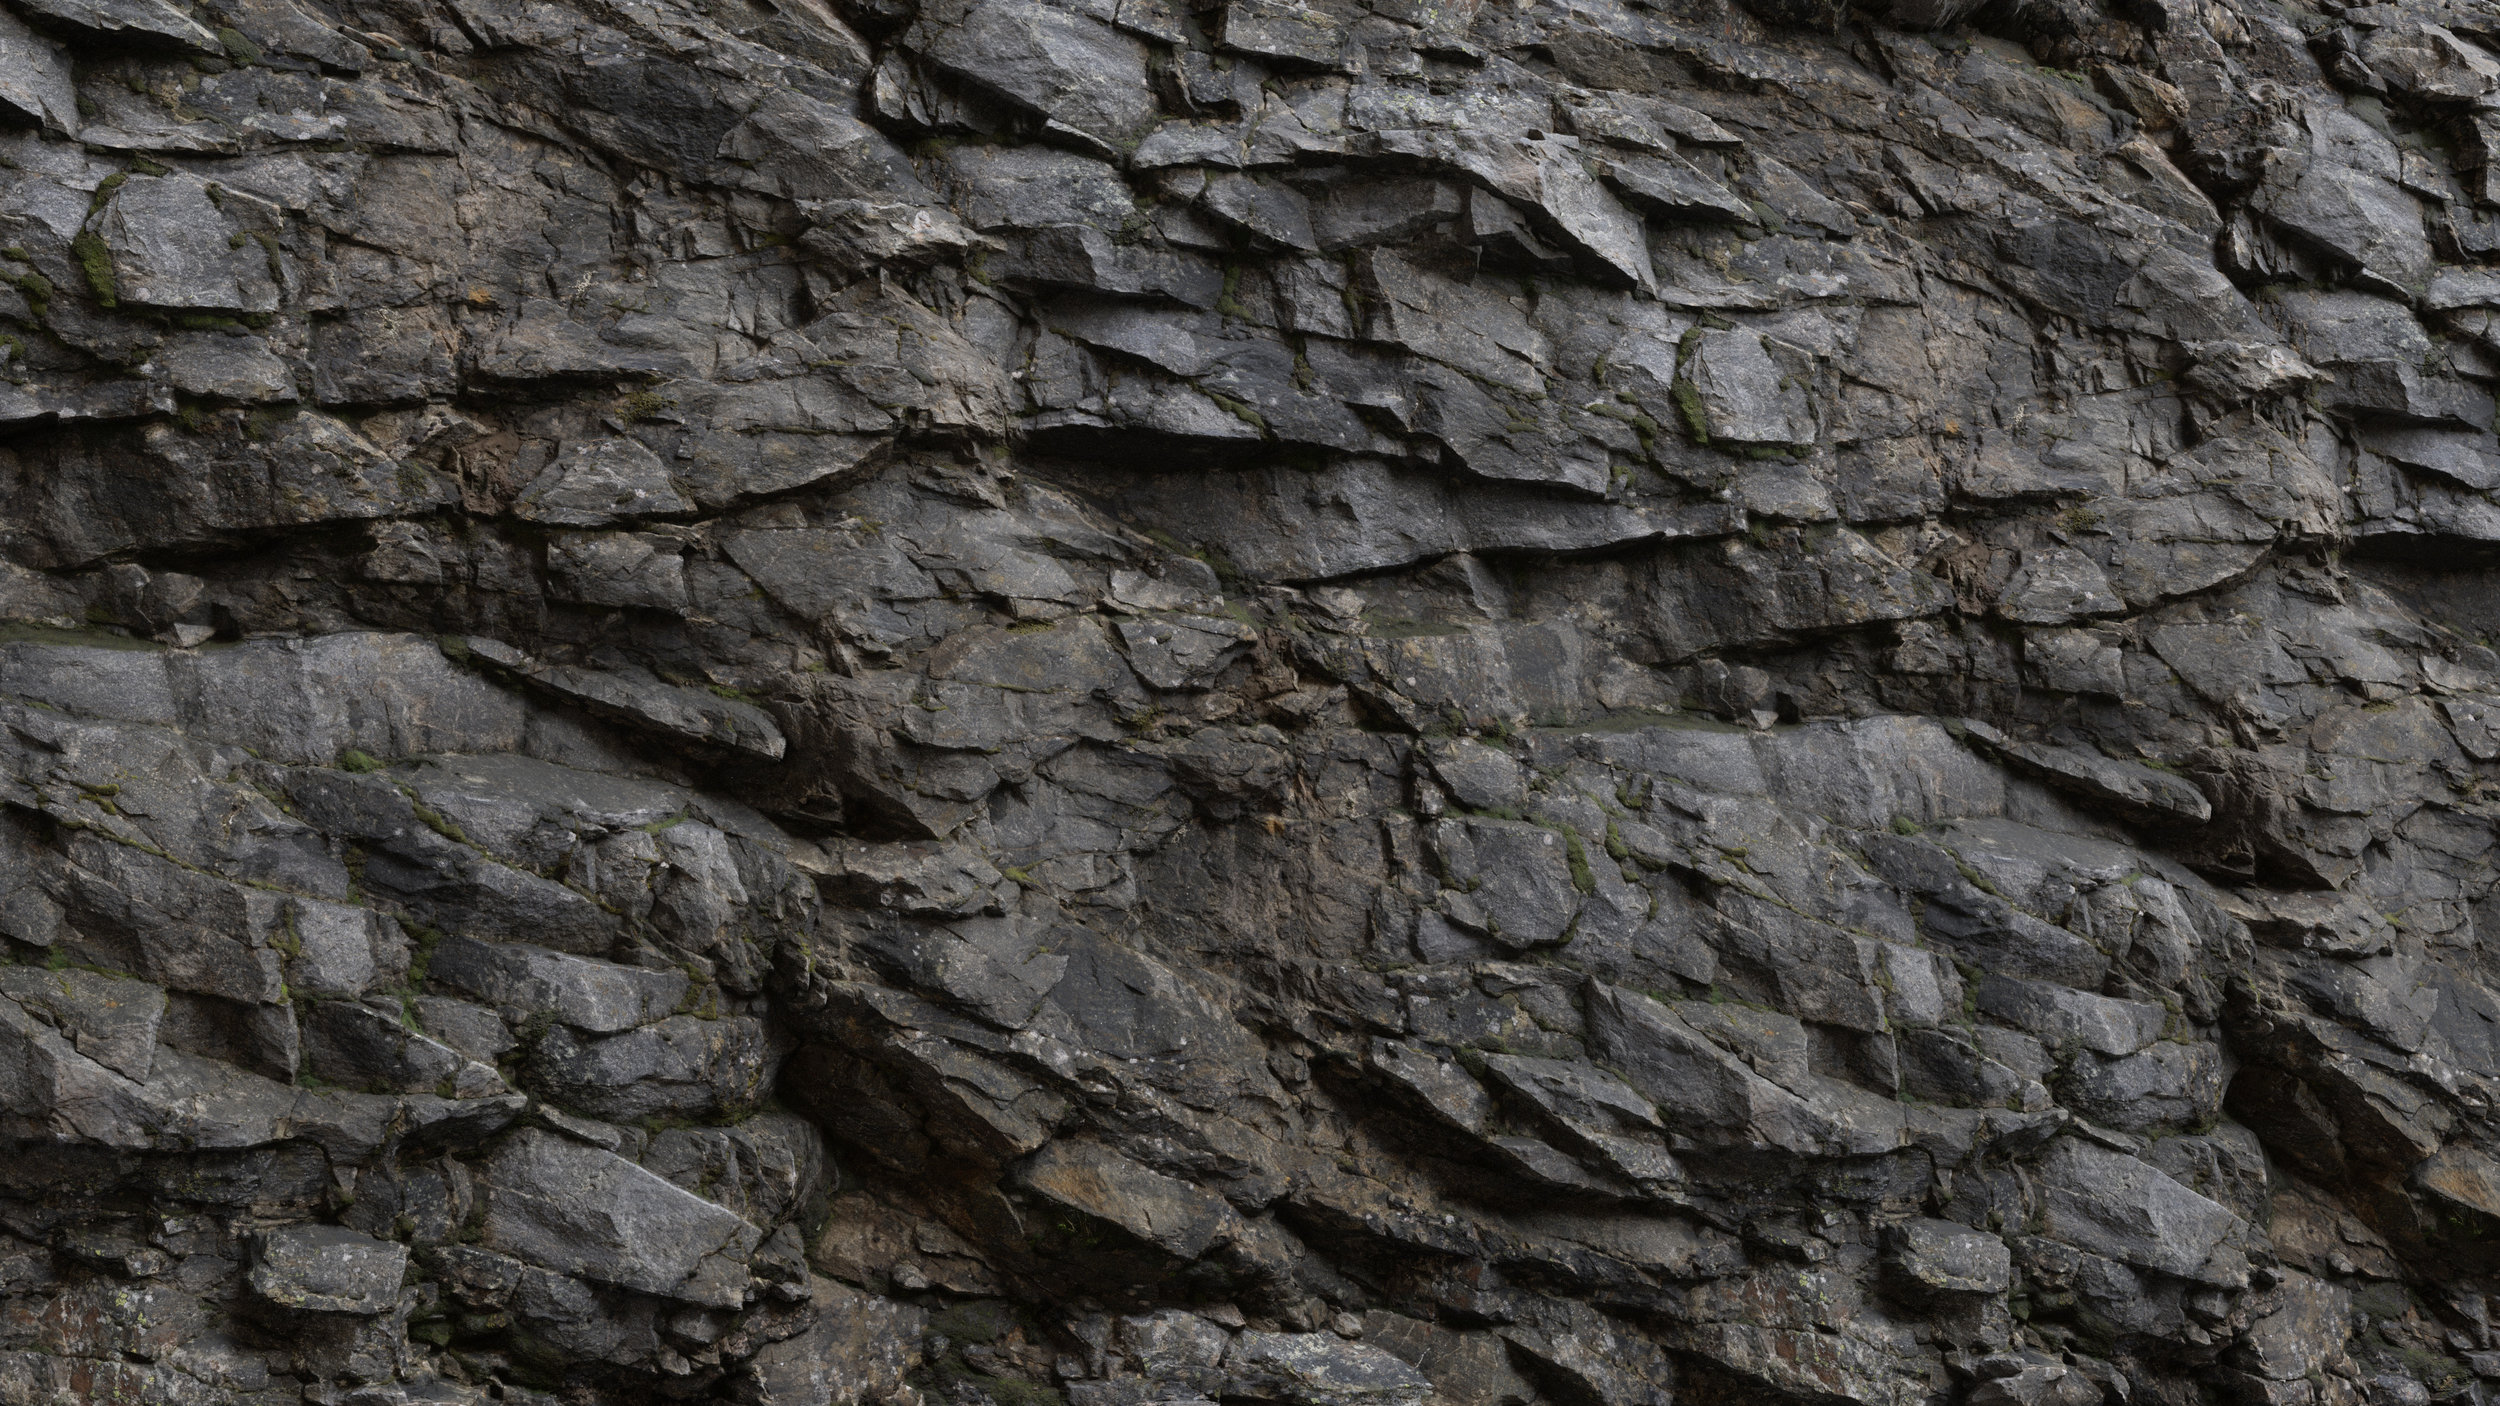 TexturesCom_Cliff_Rock 3_header.jpg